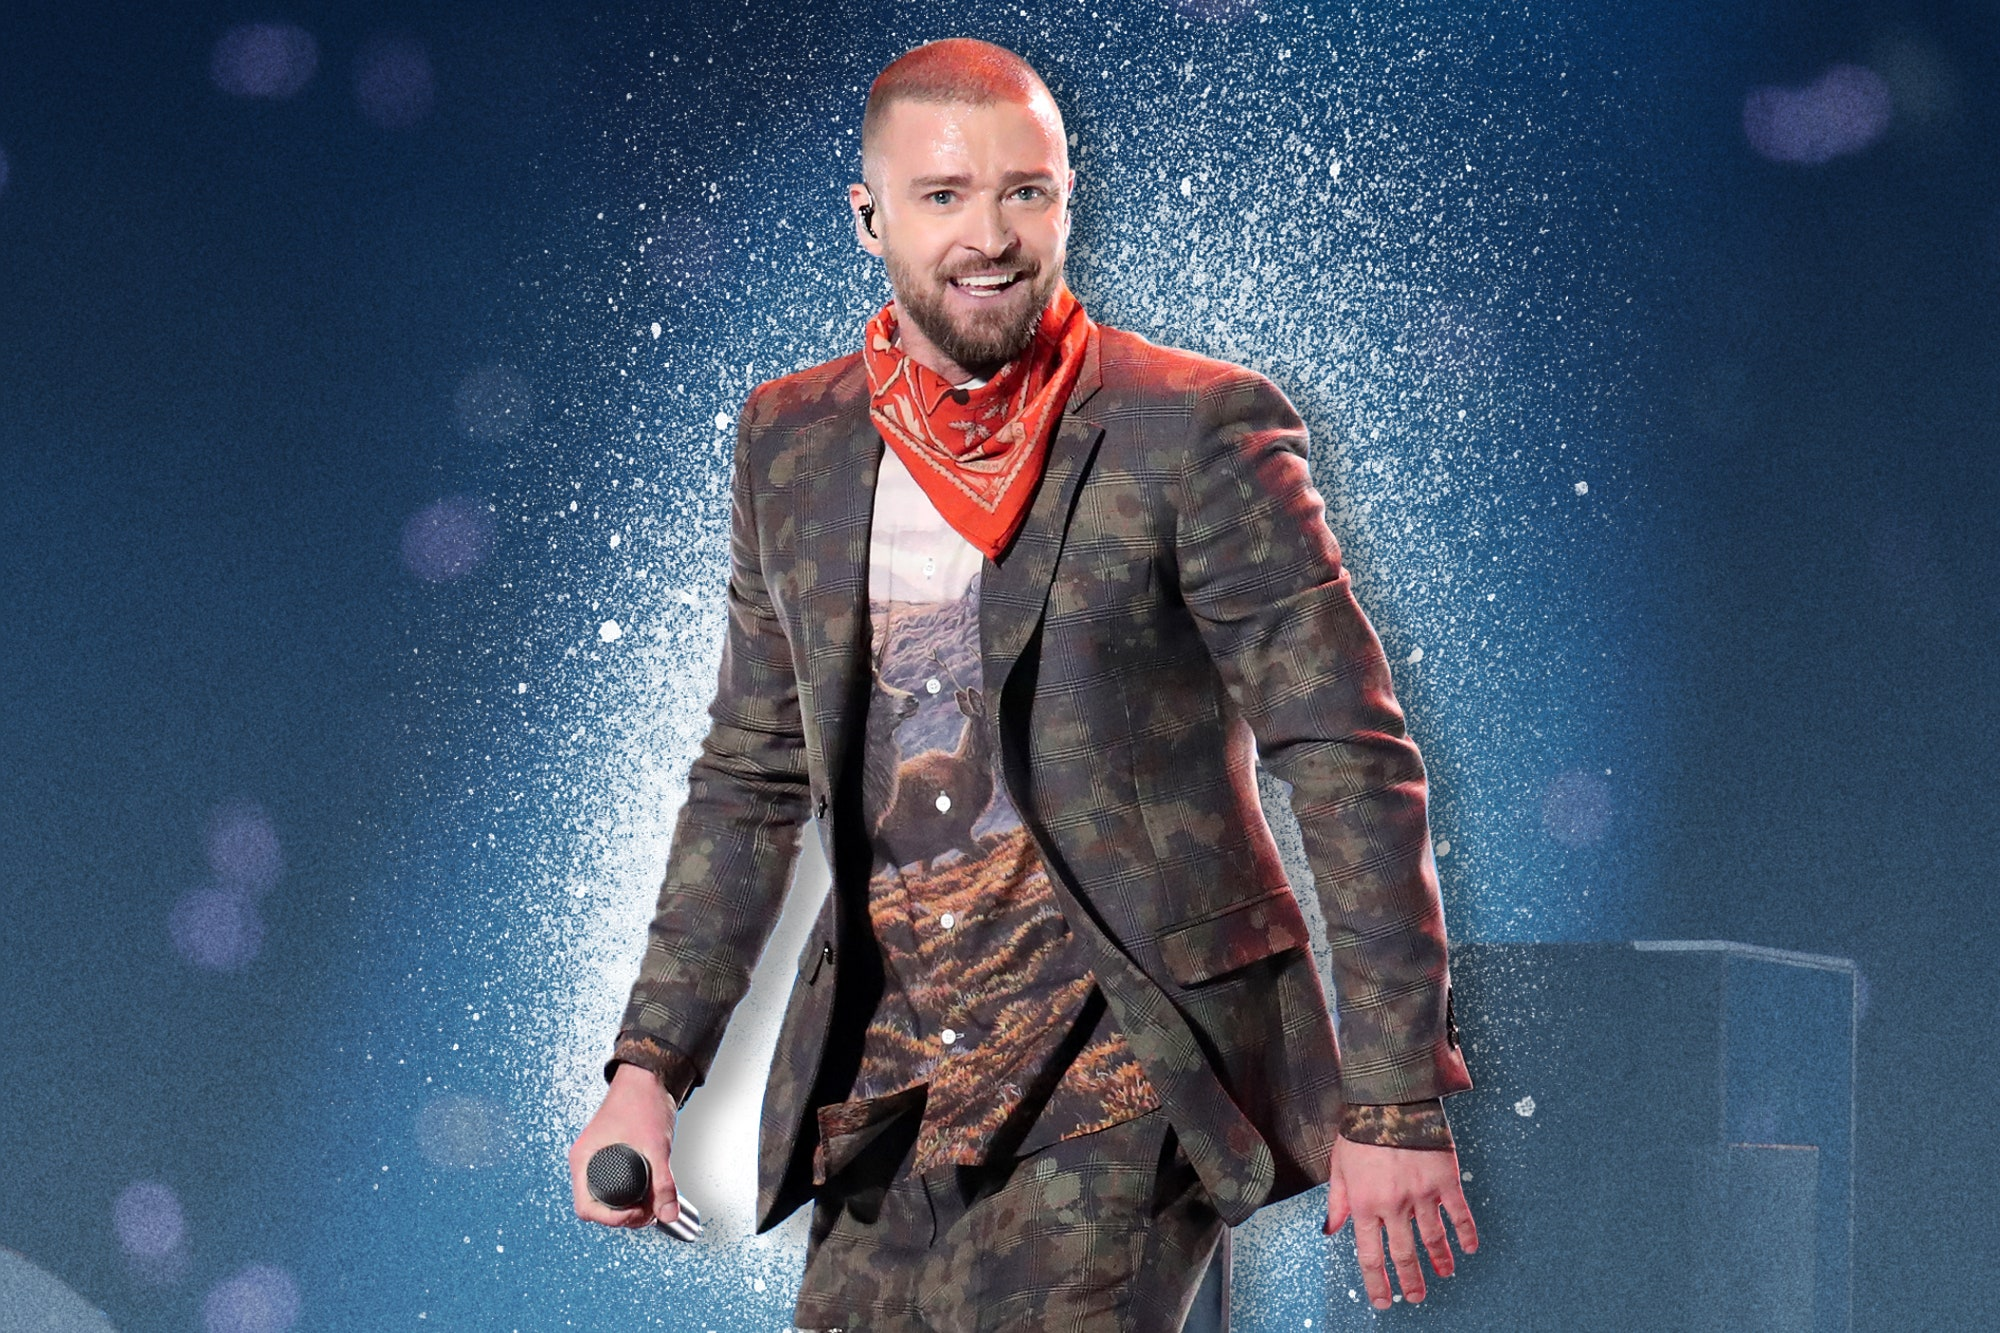 Justin Timberlake and Demi Lovato headlining Joe Biden inauguration special